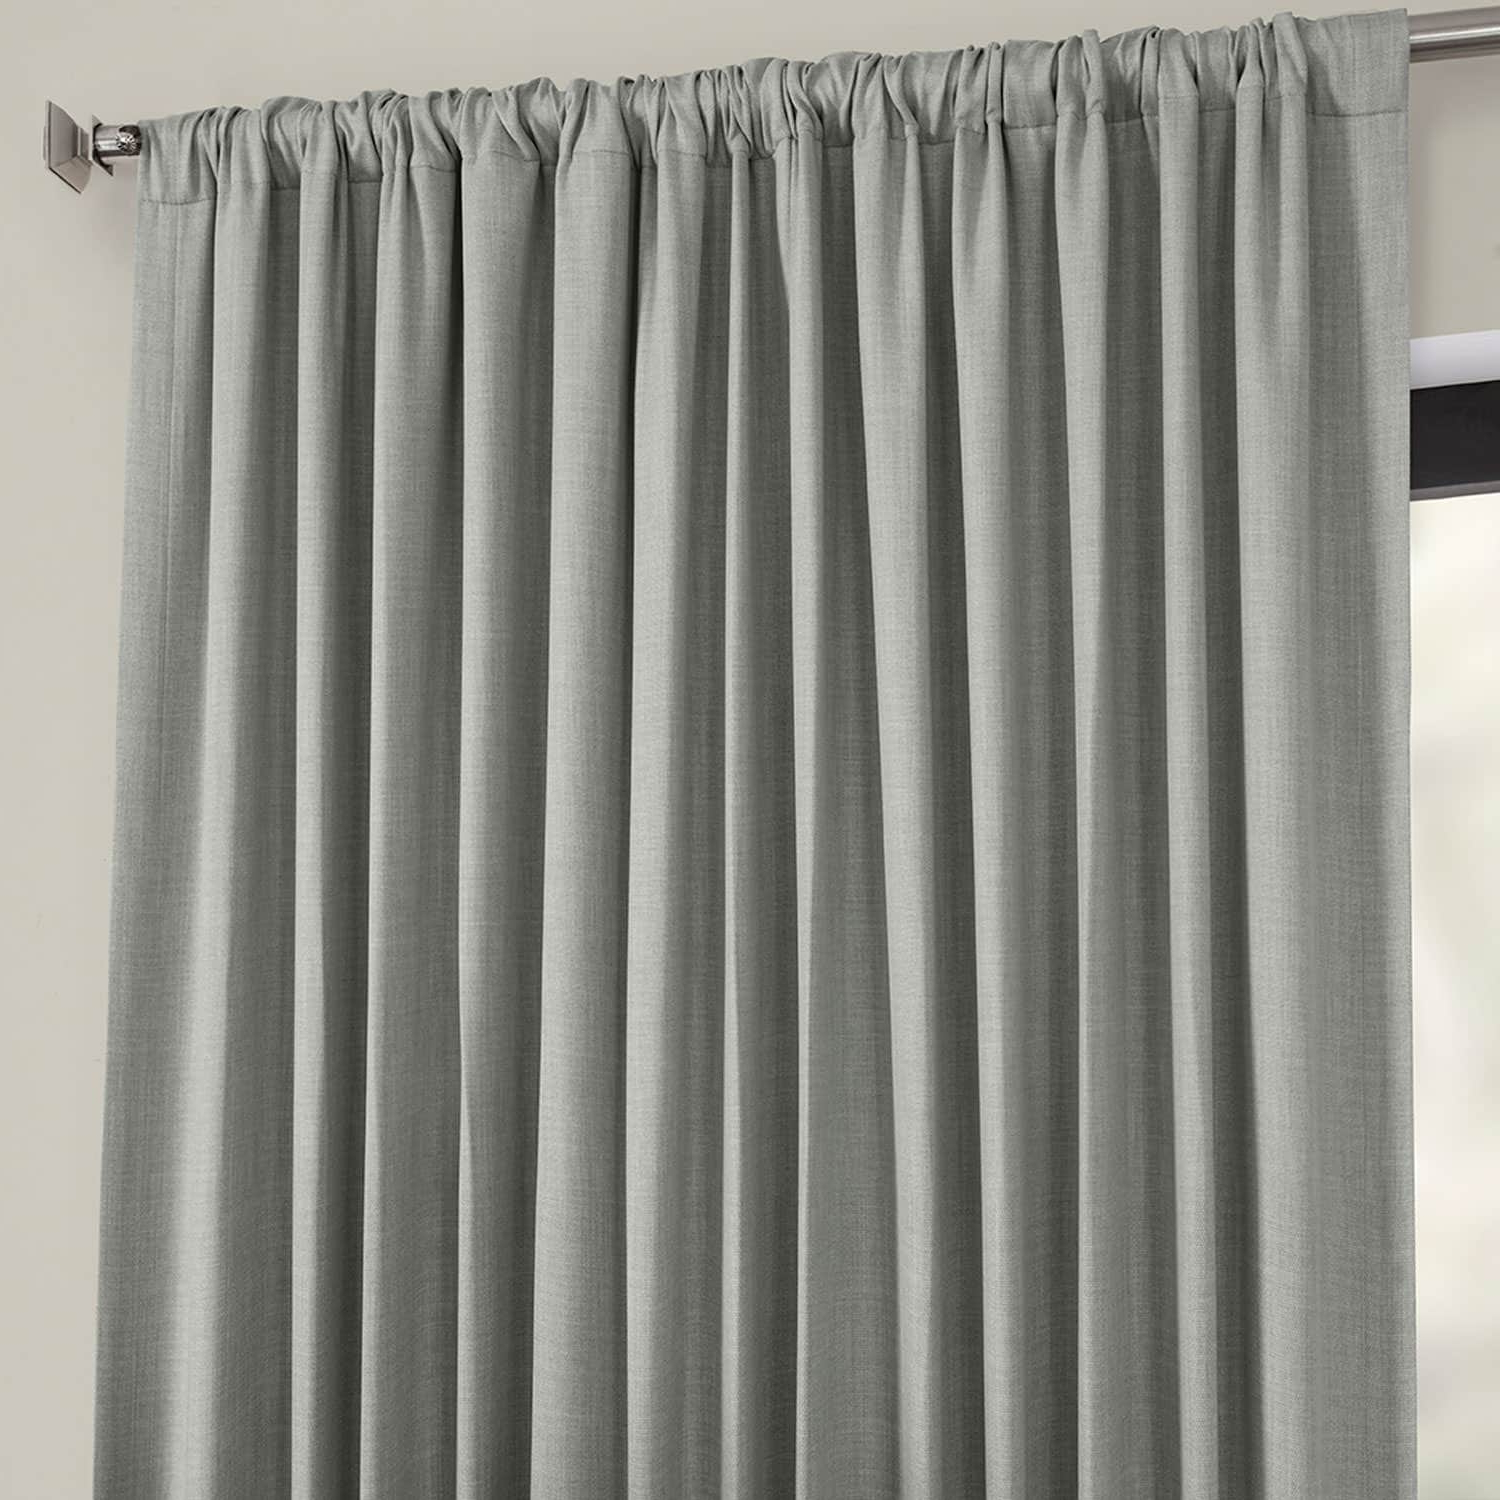 Fashionable Faux Linen Extra Wide Blackout Curtains Throughout Details About Extra Wide Faux Linen Blackout Curtains (Sold (View 5 of 21)